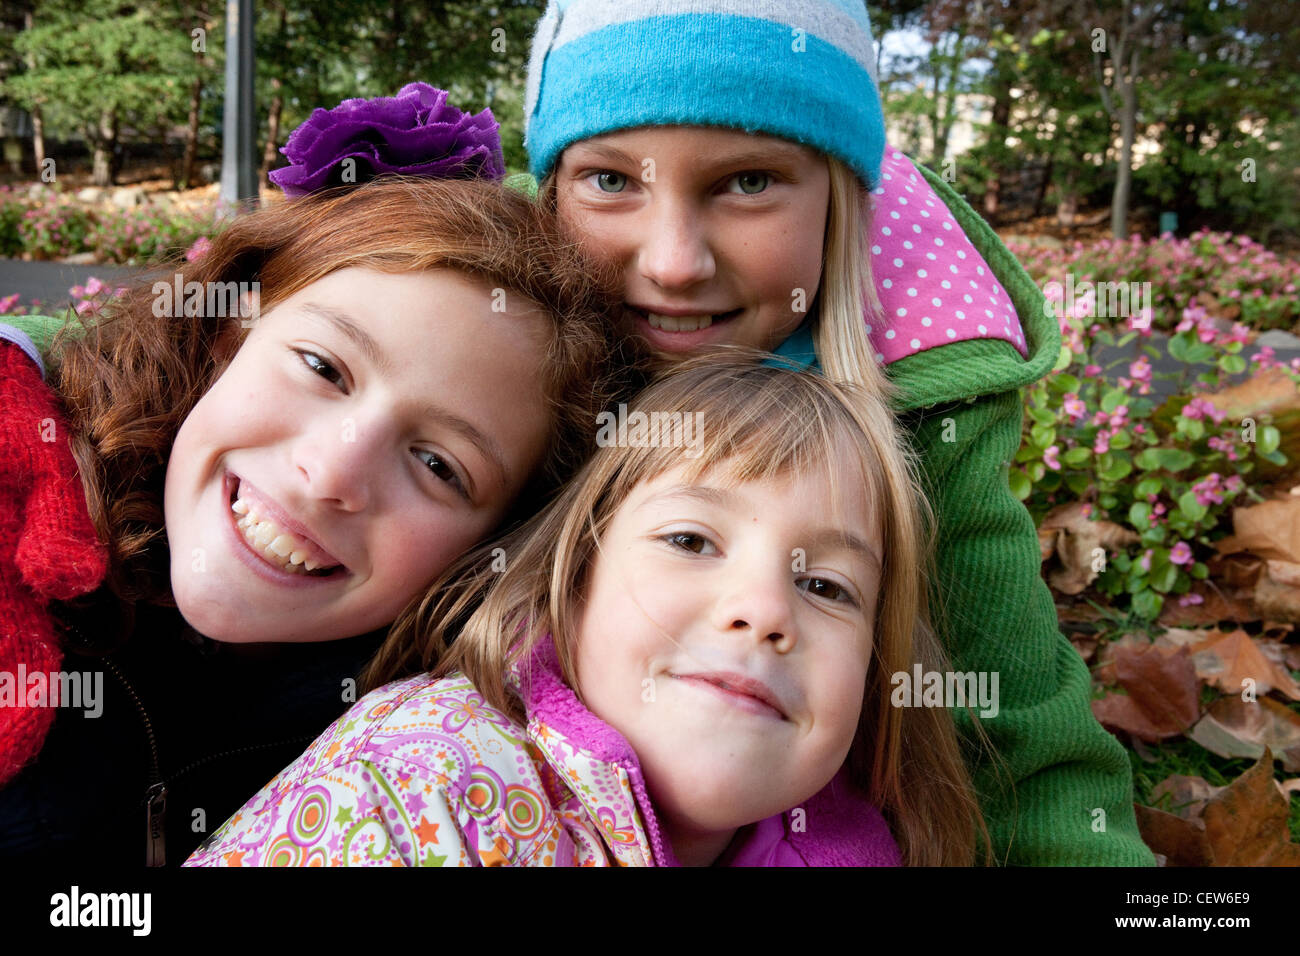 Portrait of three school age girls dressed in winter coats smiling - Stock Image